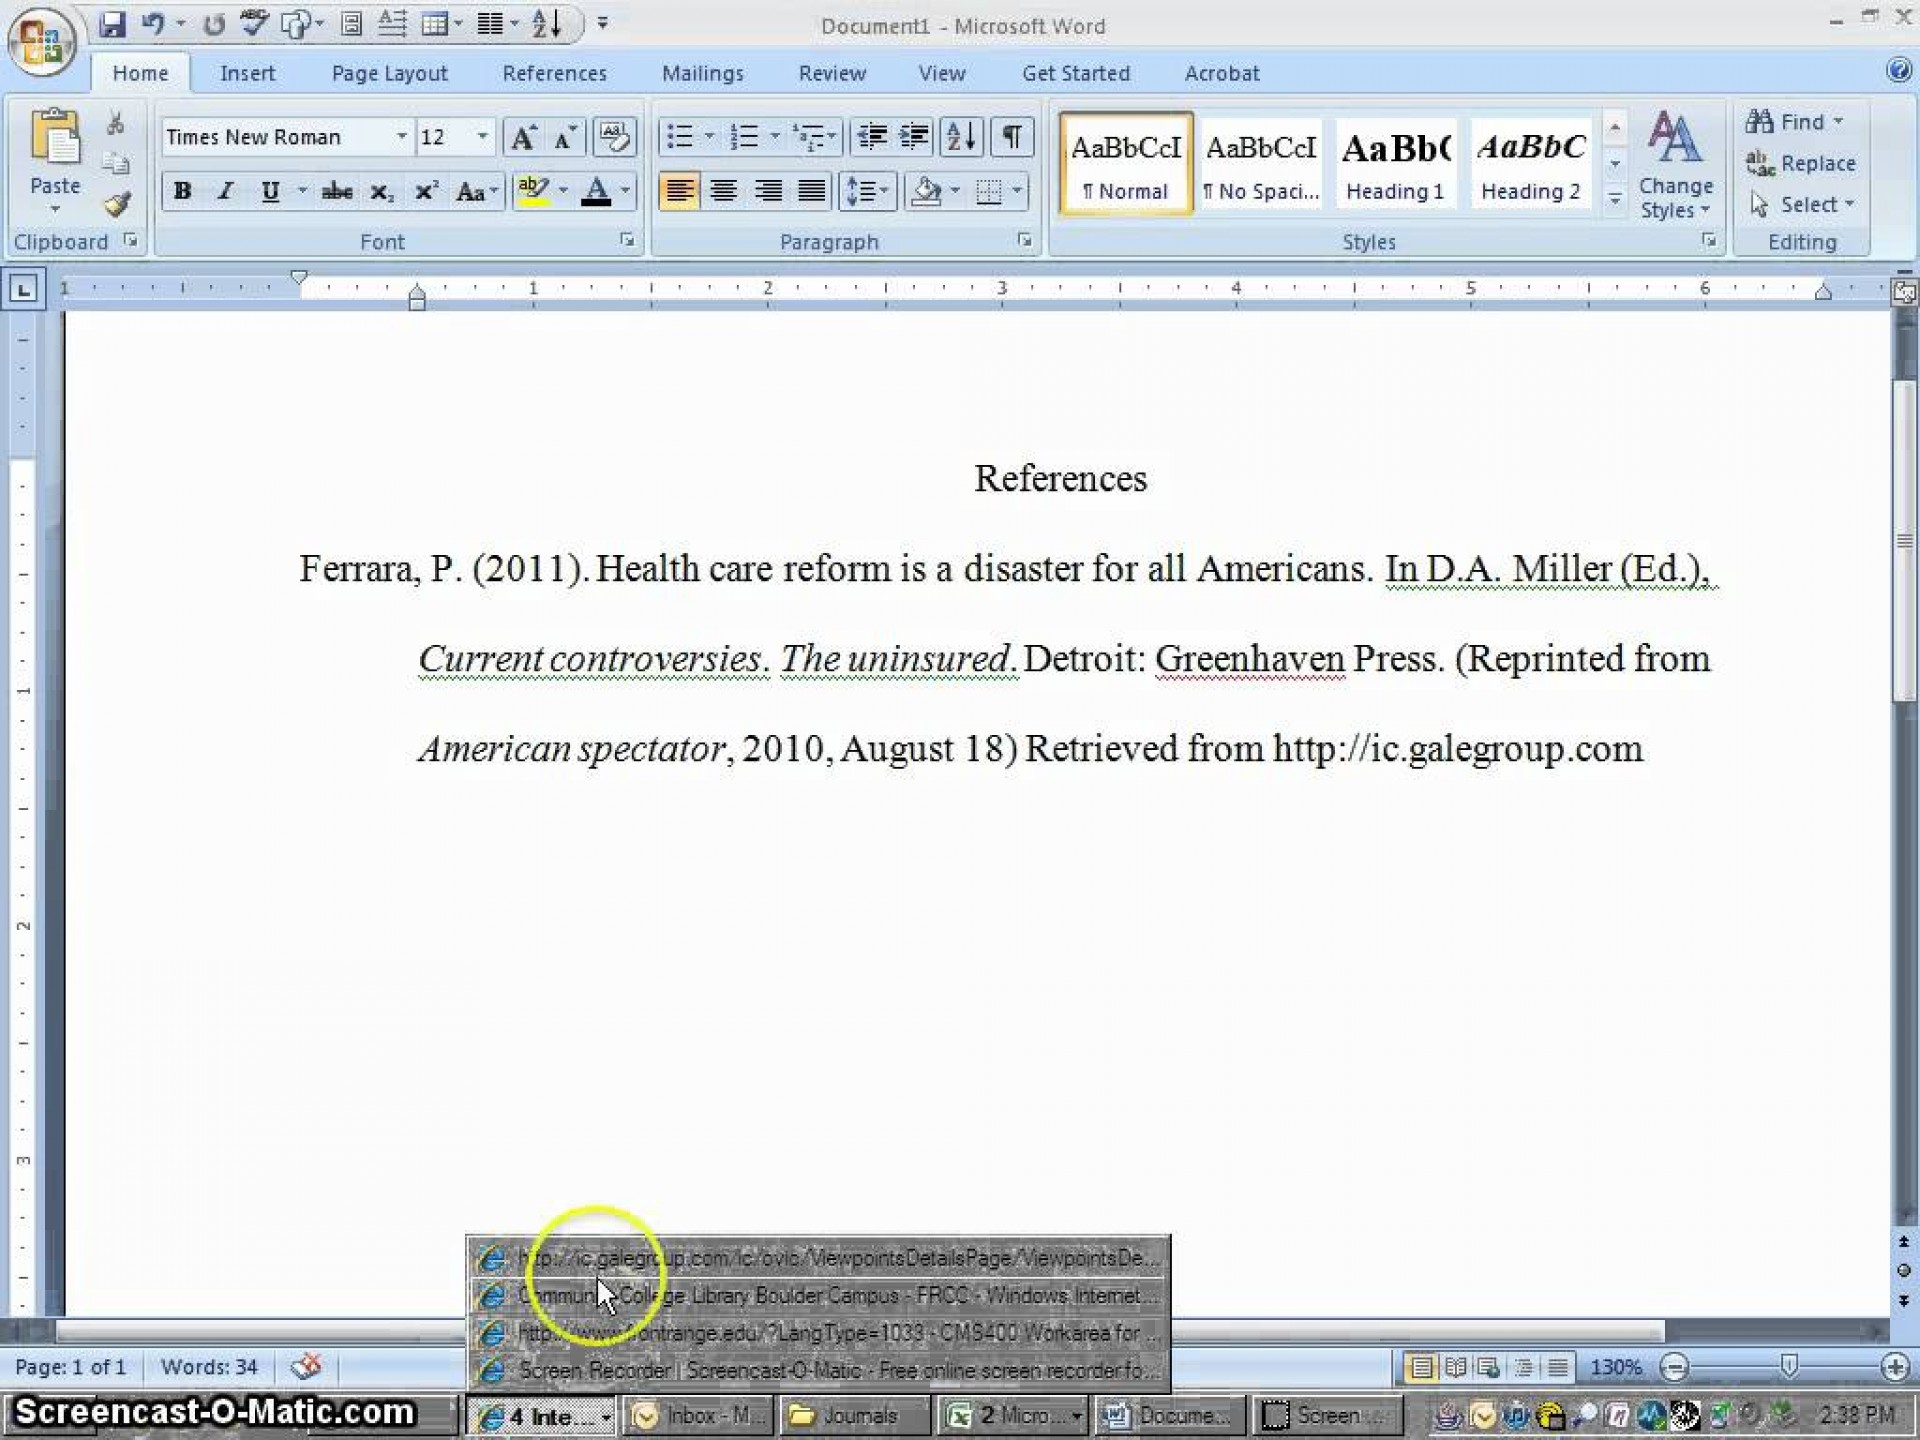 014 Best Solutions Of Free Apa Maker Insrenterprises For Your Cite In Format Generator Research Top Paper Chicago Style A Harvard Online 1920